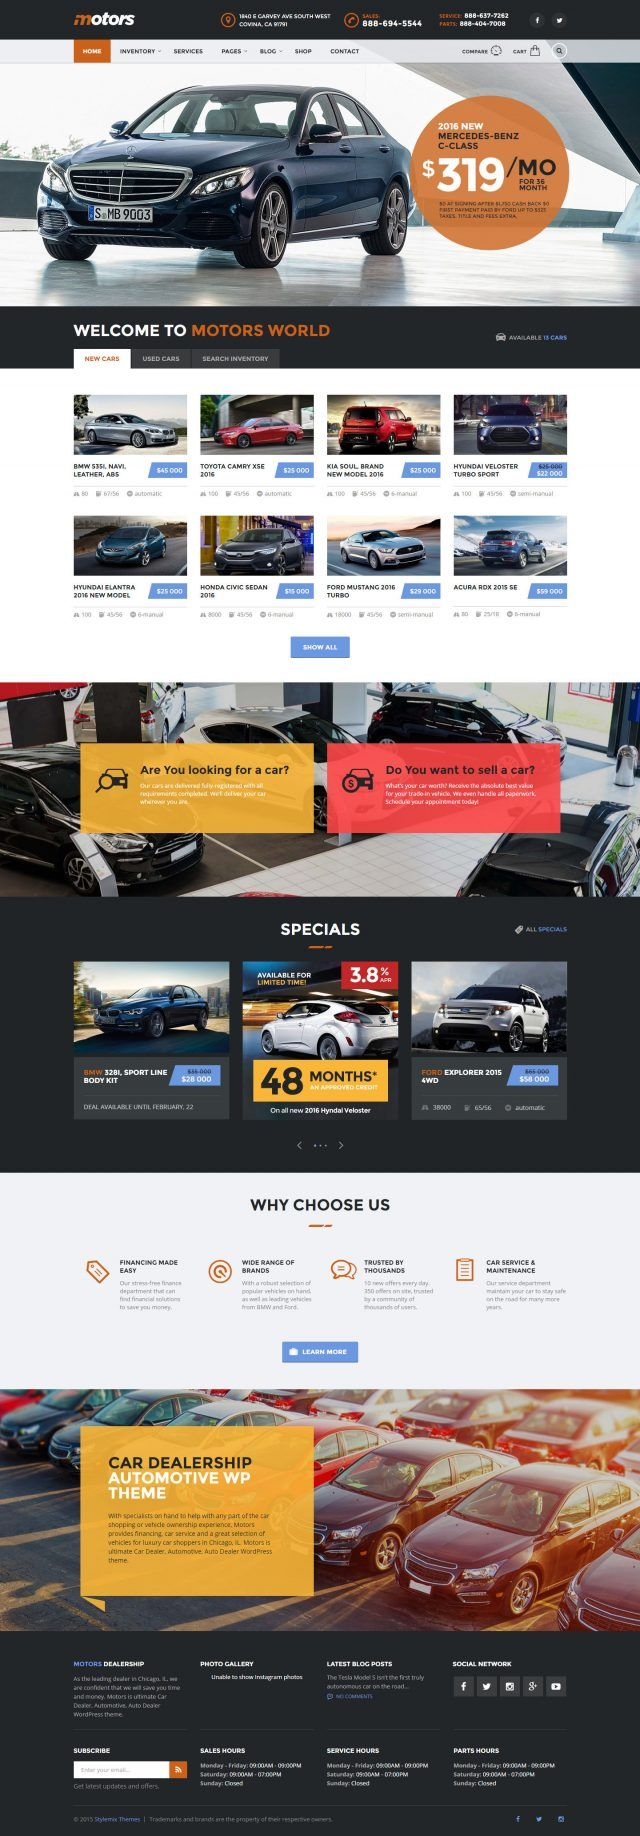 Motors, ein WordPress Premium-Theme für die Automotive-Branche | DR. WEB